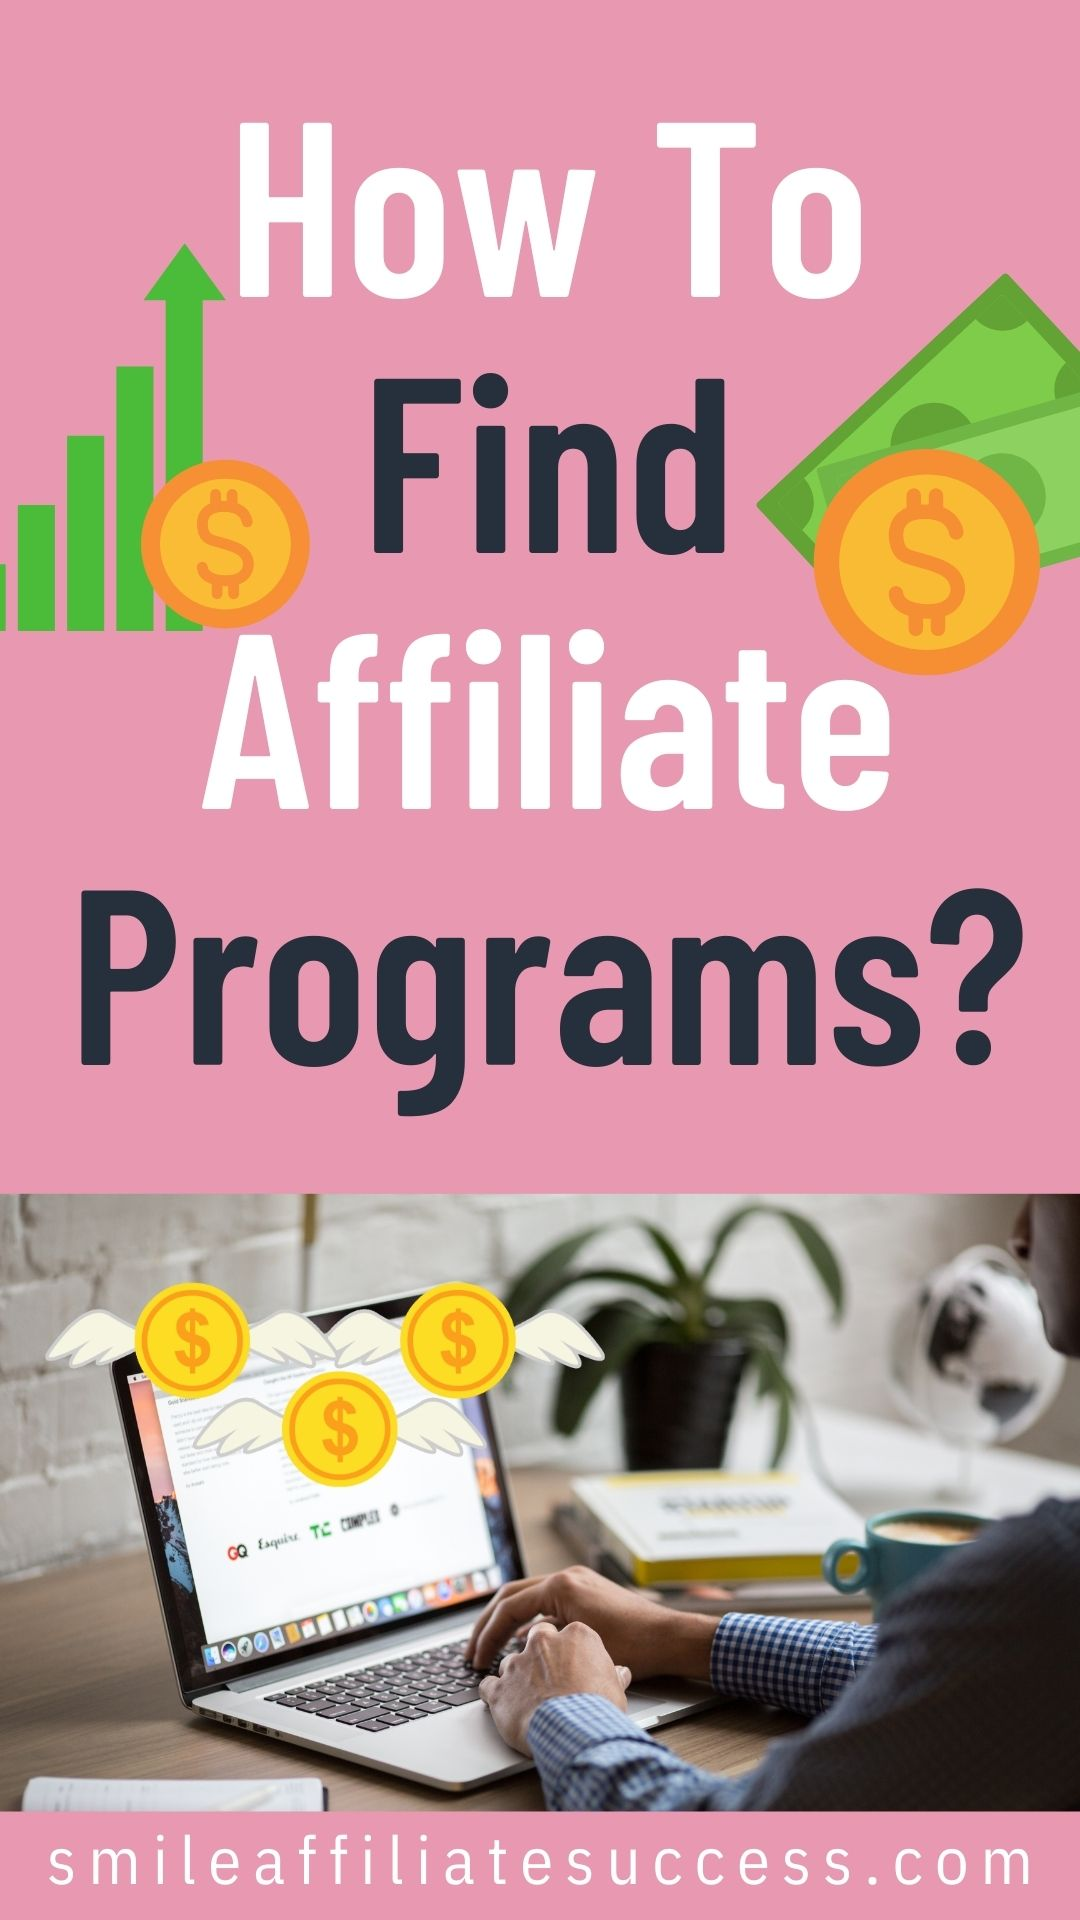 How To Find Affiliate Programs?